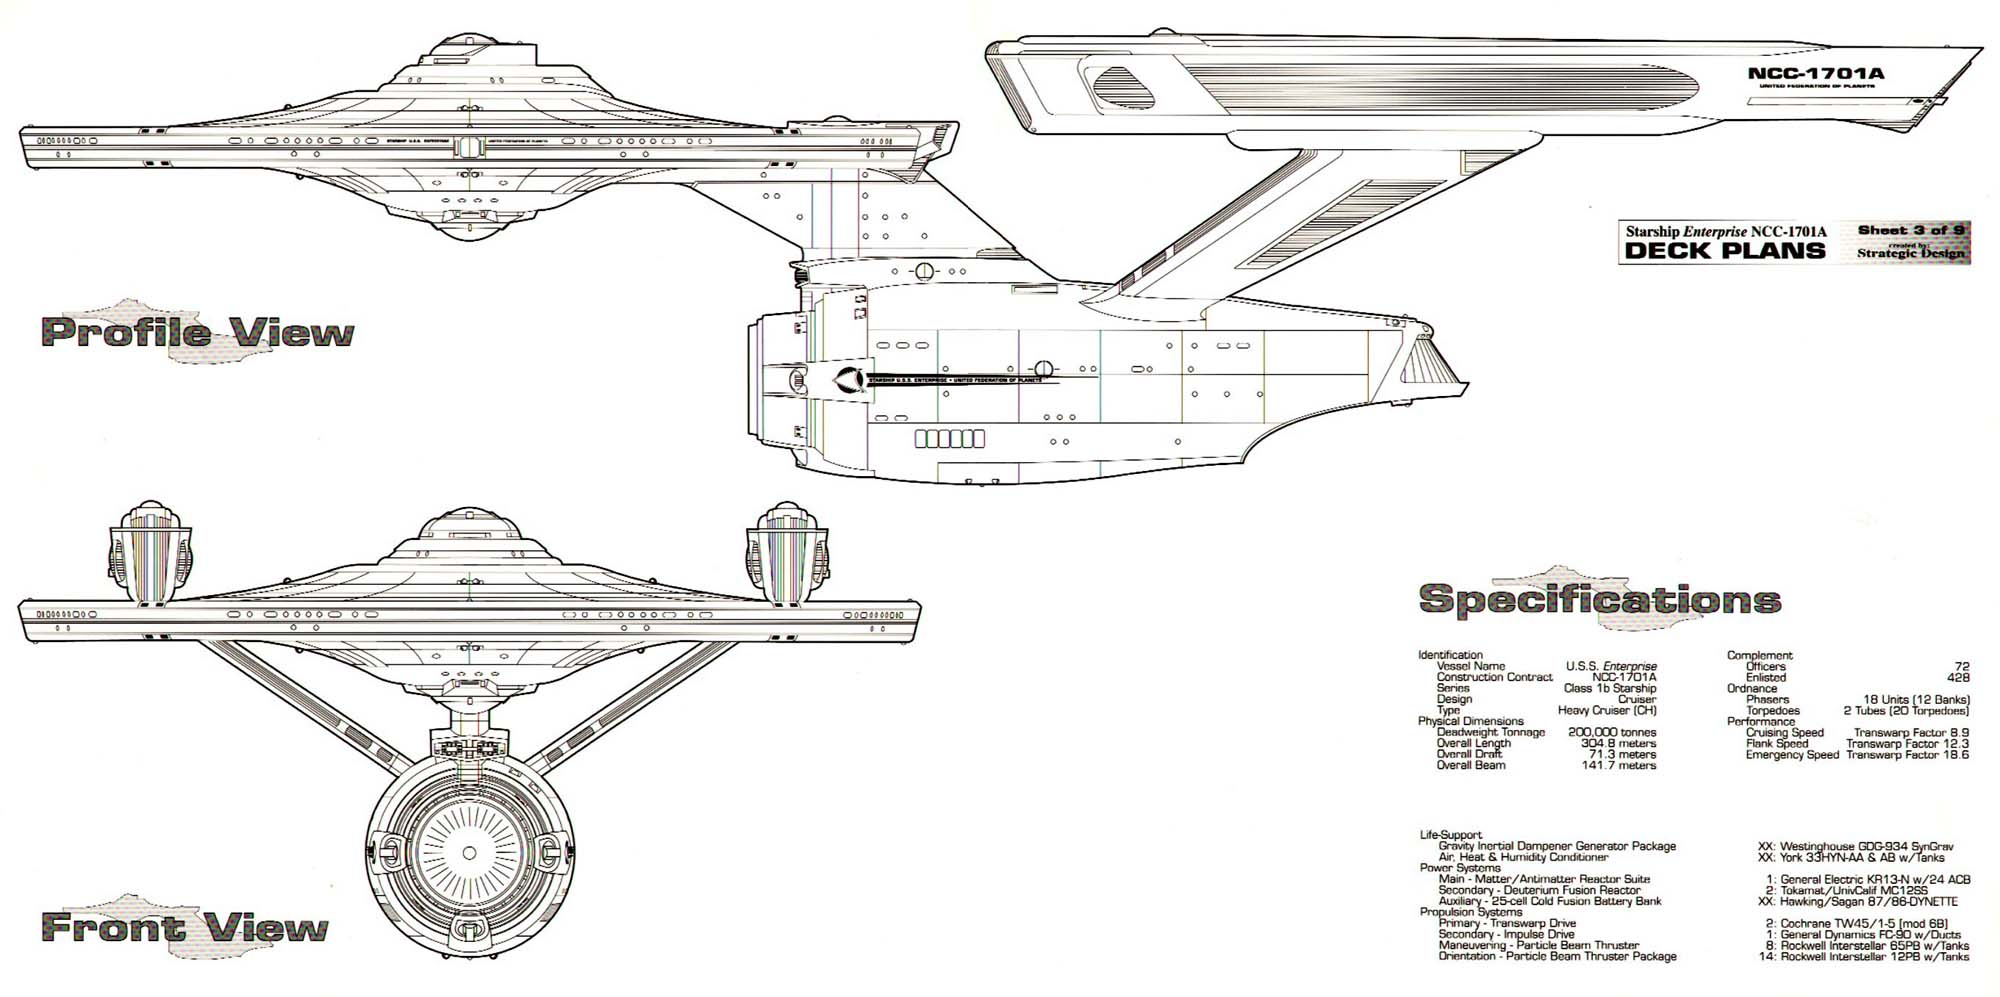 Enterprise NCC-1701A Deck Plans